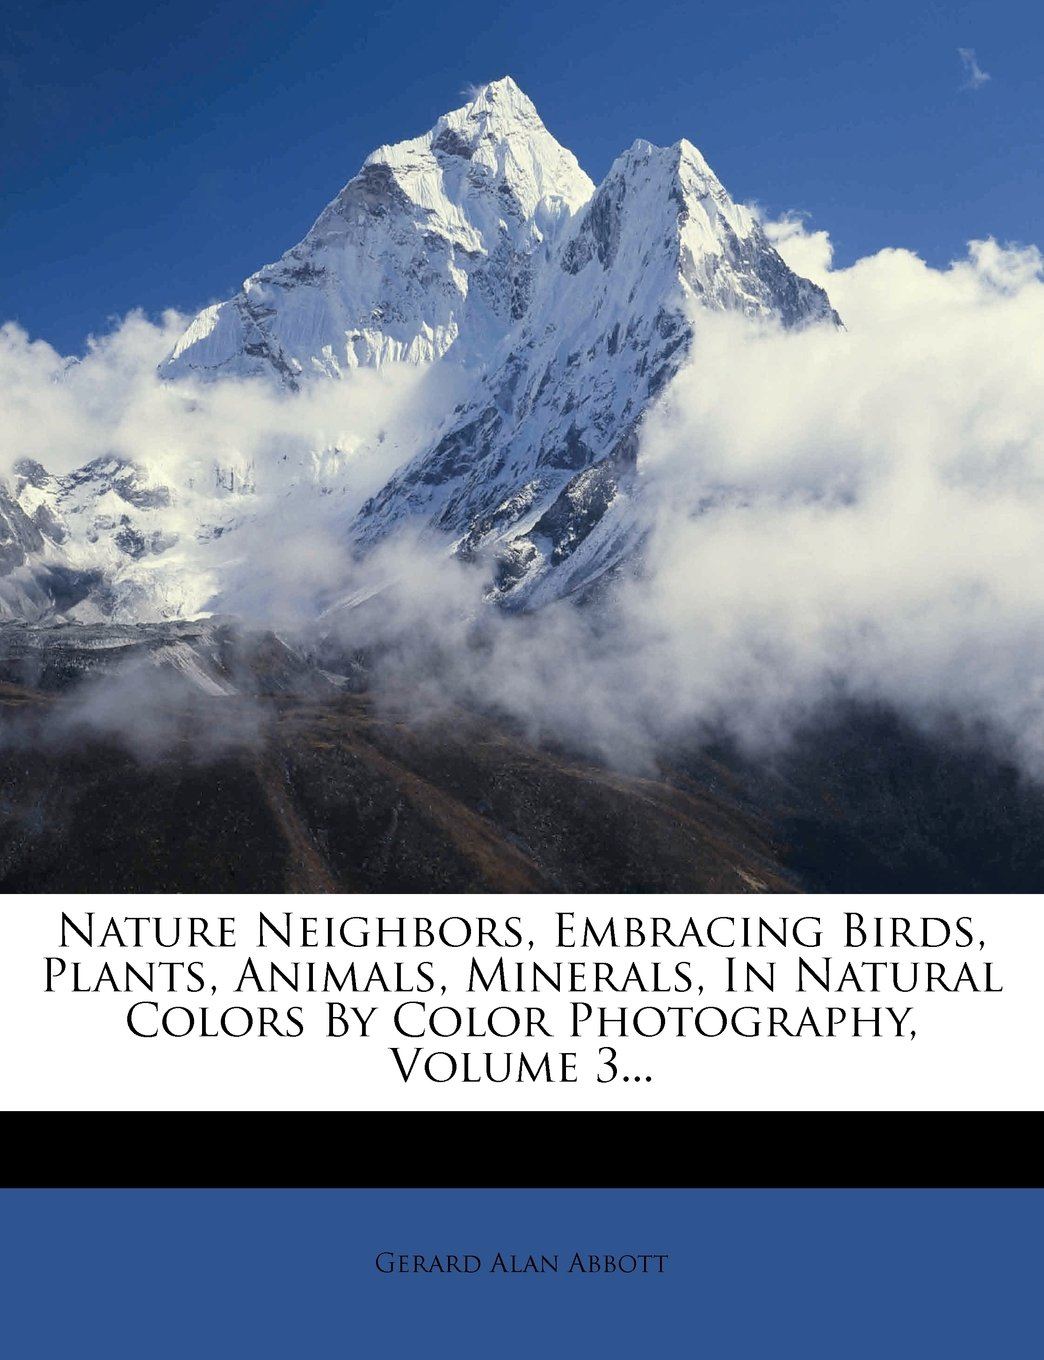 Nature Neighbors, Embracing Birds, Plants, Animals, Minerals, In Natural Colors By Color Photography, Volume 3...